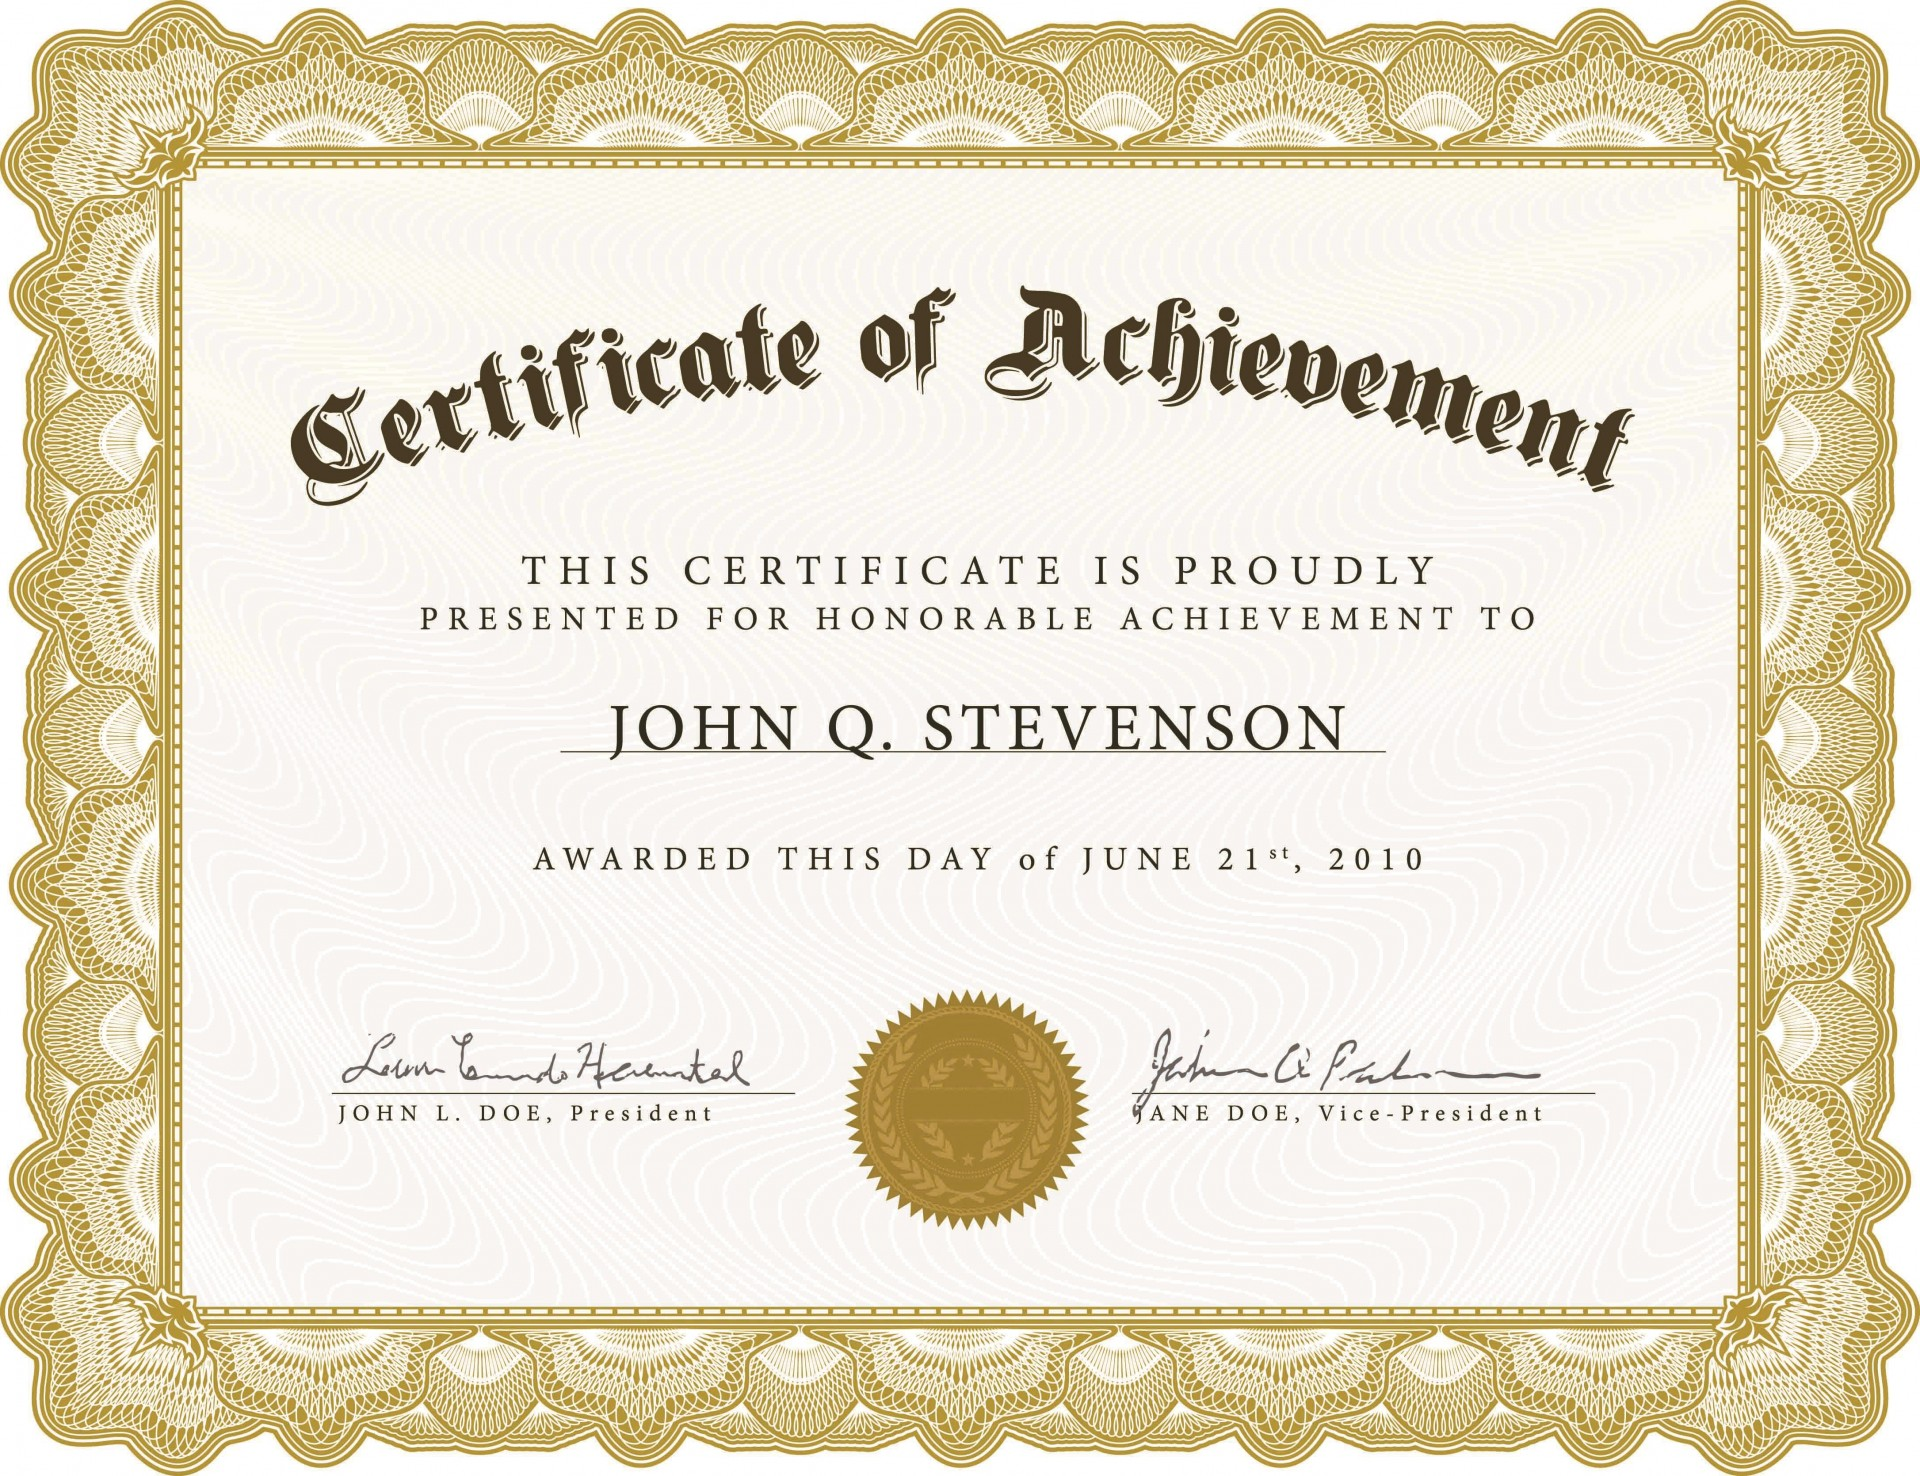 005 Excellent Free Printable Blank Certificate Template Image  Templates Gift Of Achievement1920